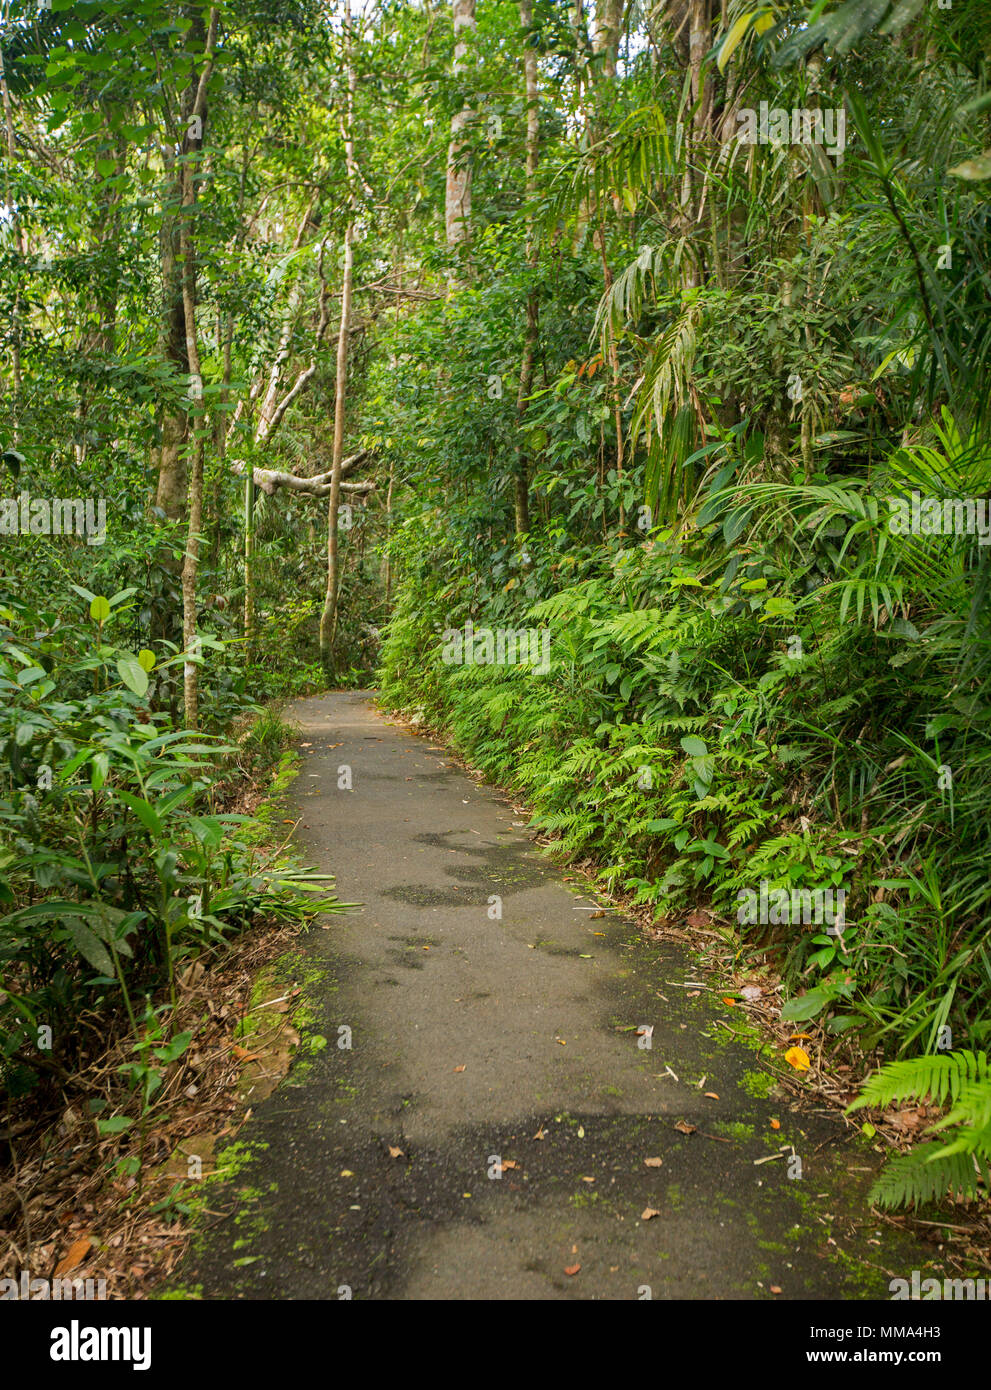 Walking track through dense emerald green vegetation of rainforest in Eungalla National Park Queensland Australia - Stock Image